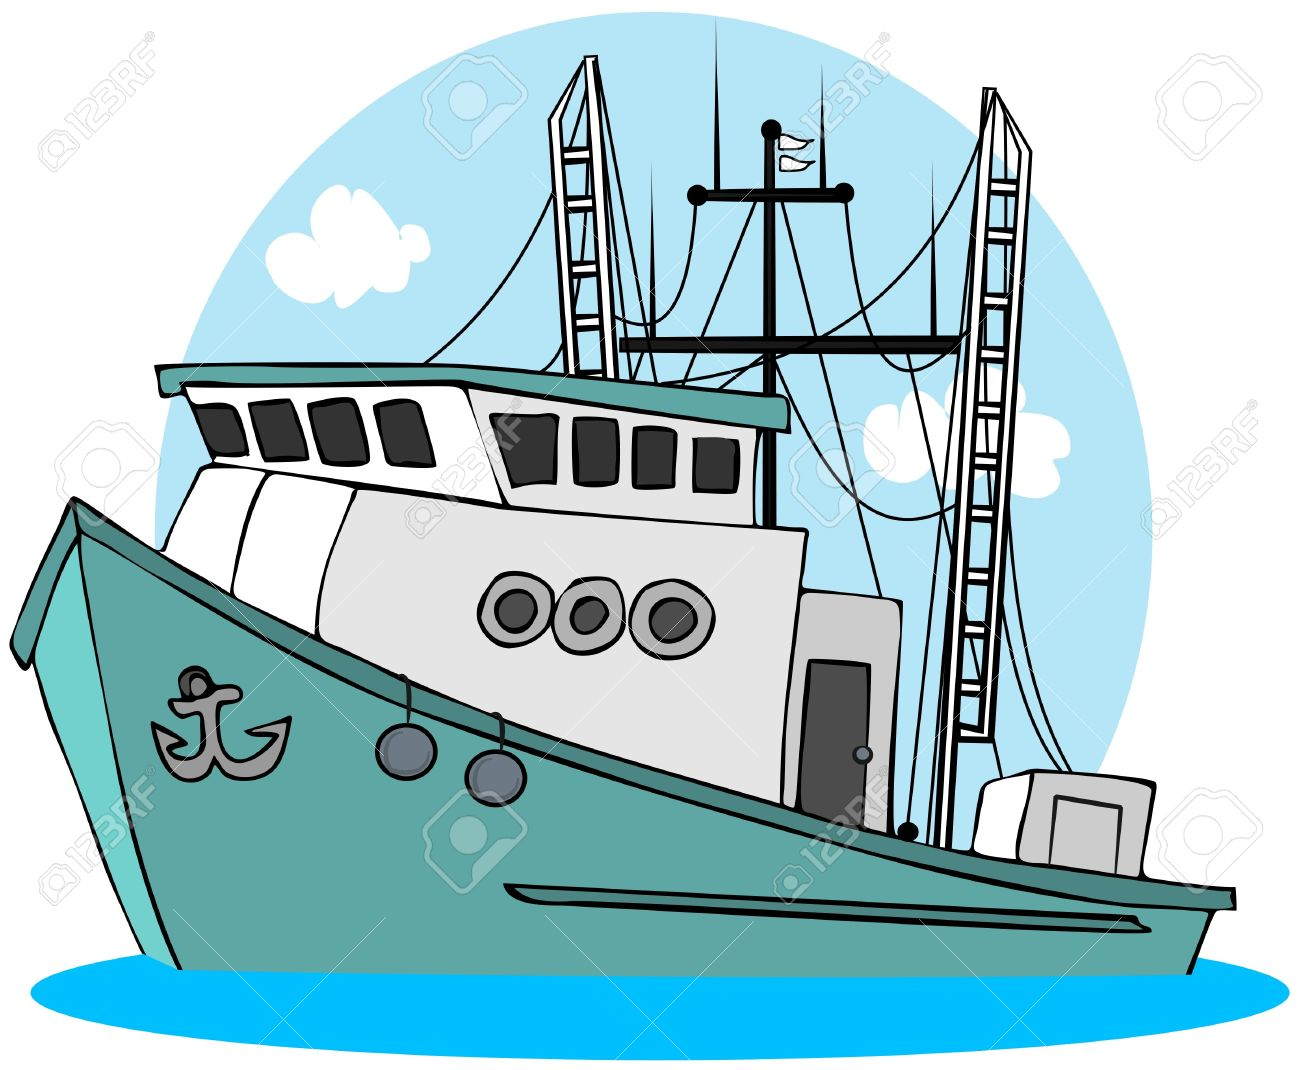 Fishing Boat Cartoon Fishing Trawler  boat  fishing